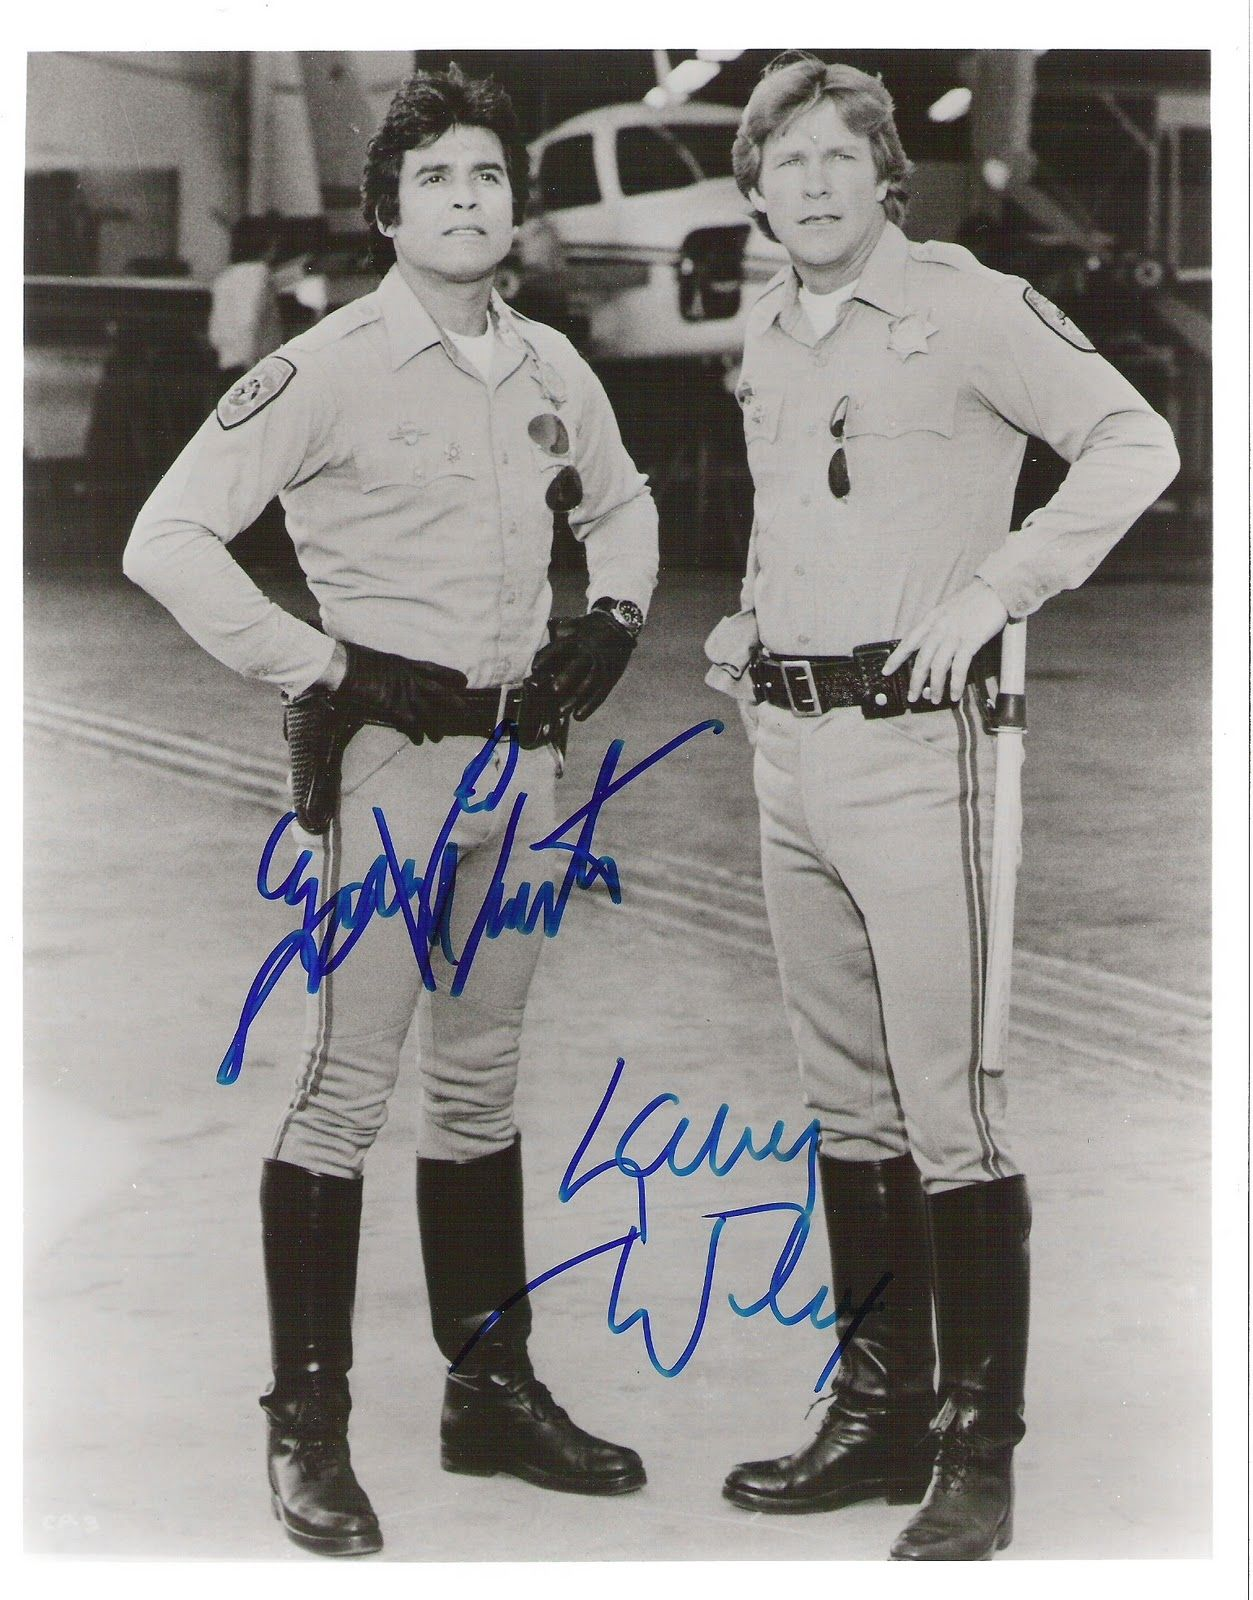 s drama tv shows chips mm s s estrada wilcox police chips erik estrada and larry wilcox